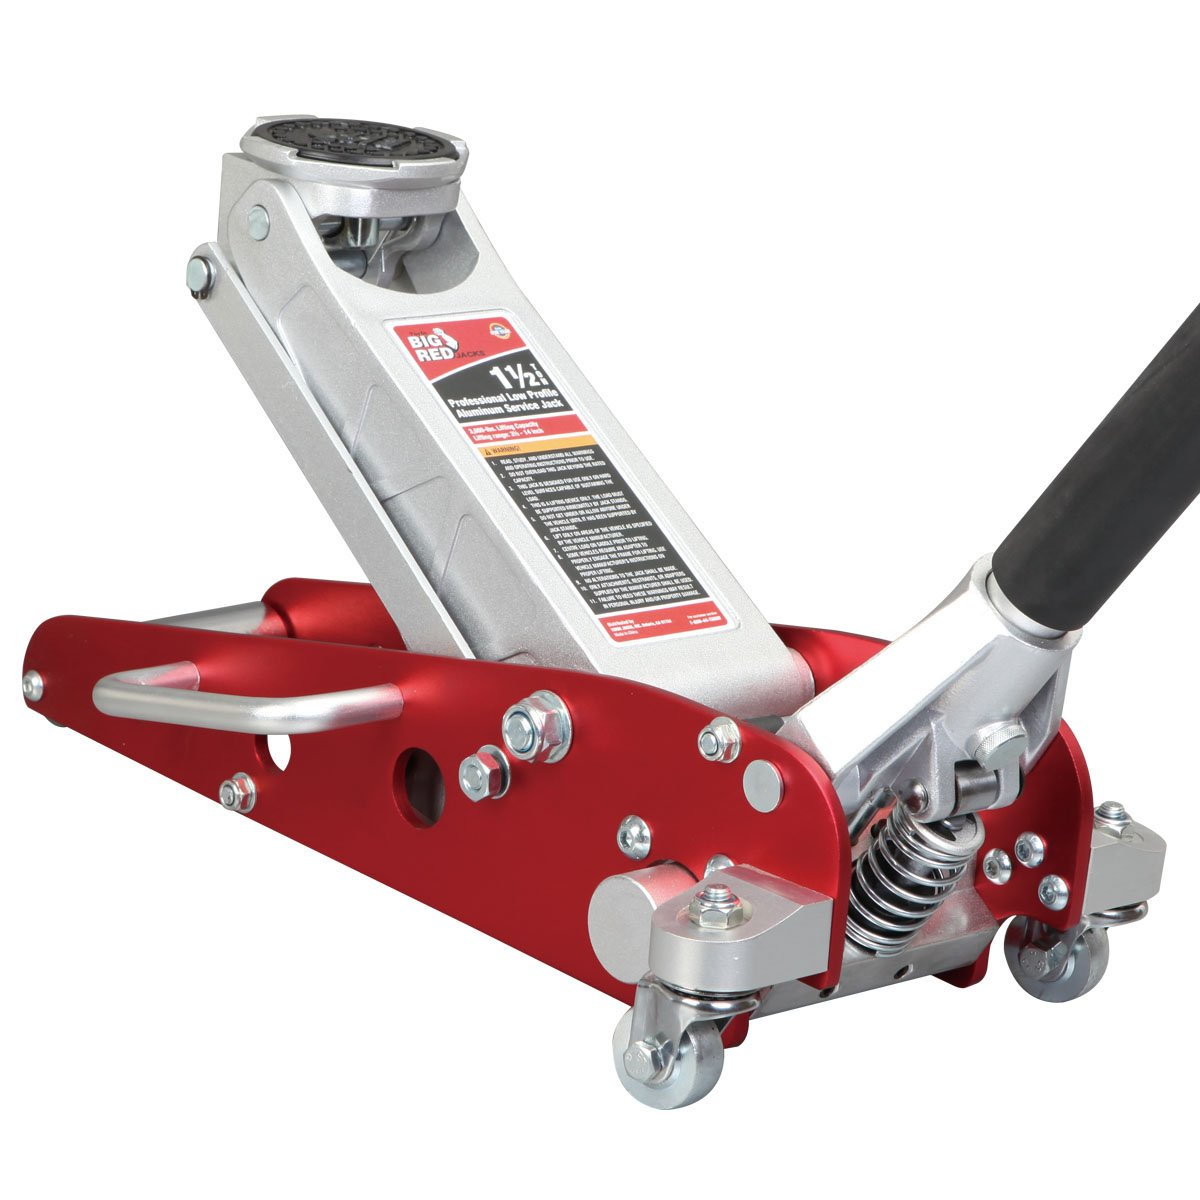 Top 10 Best Hydraulic Floor Jacks Reviews 2018 And 2019 On